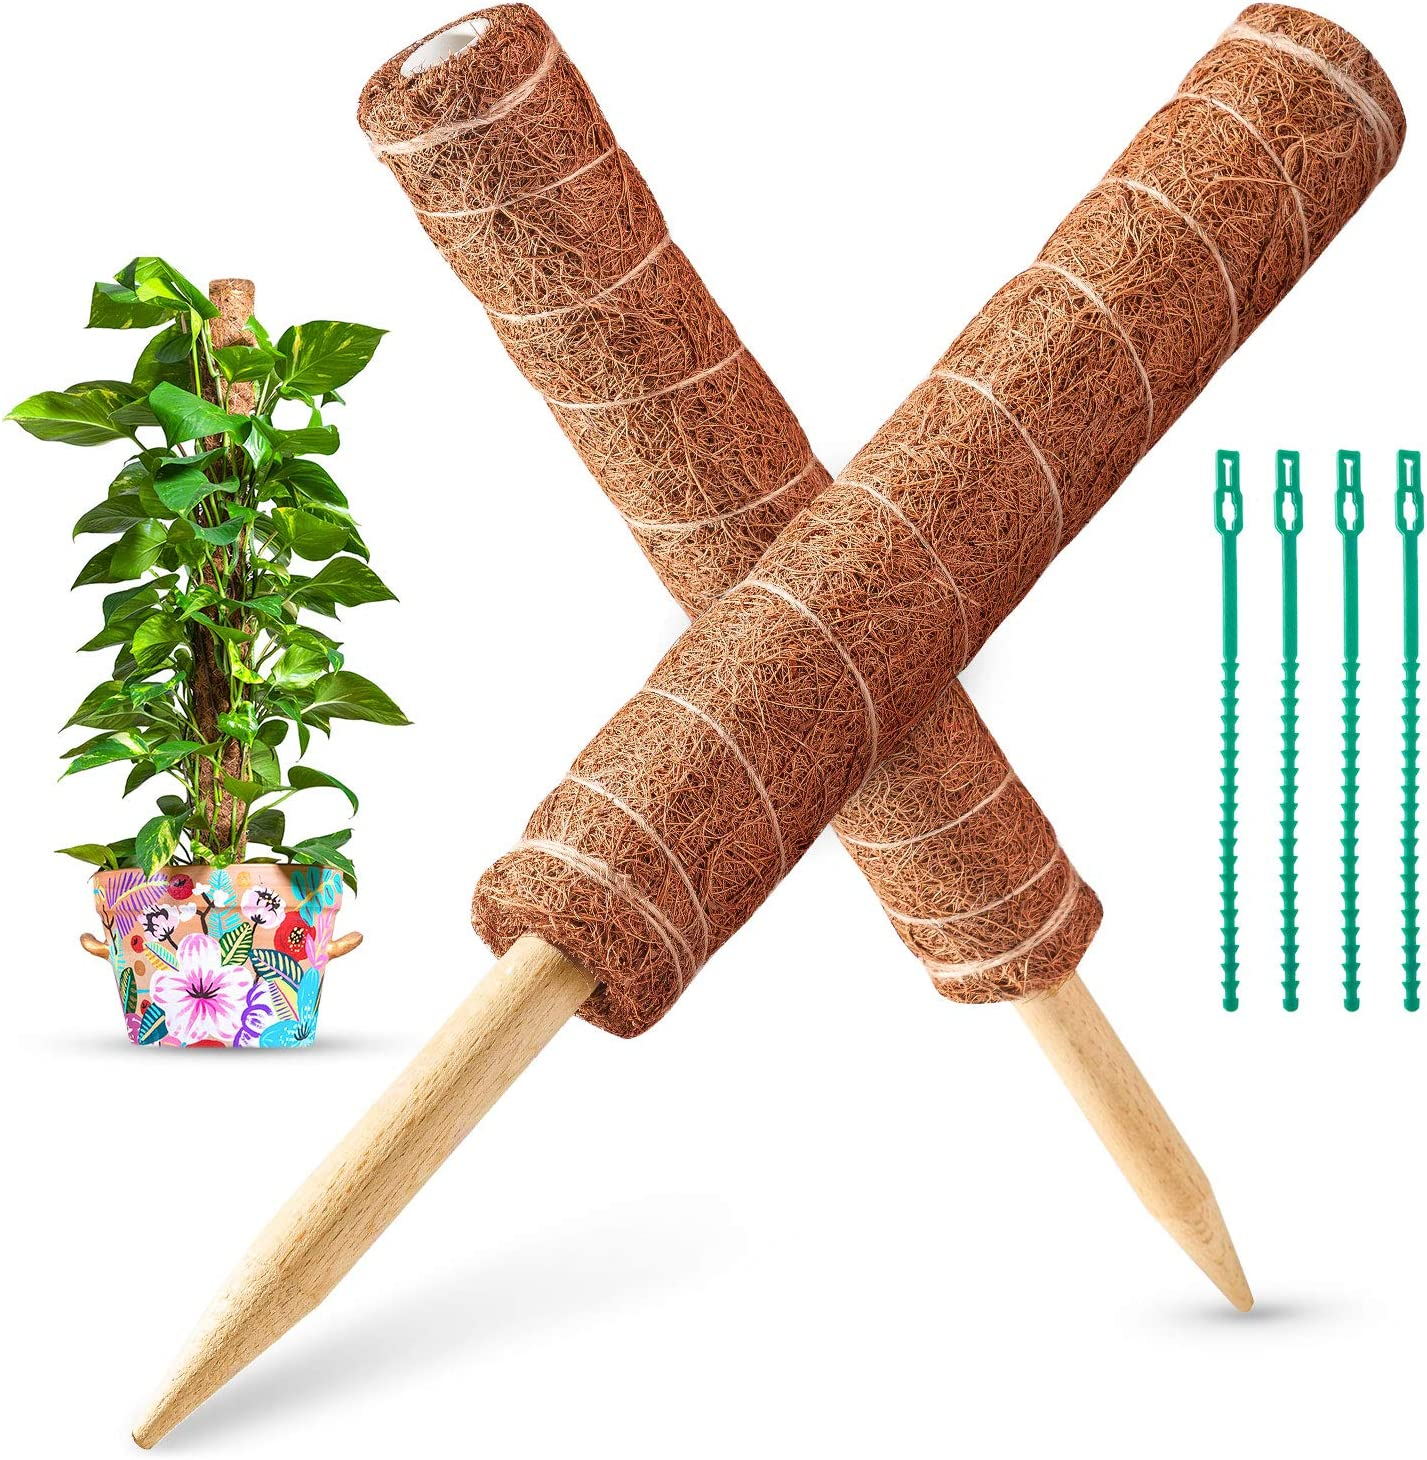 35.4IN Moss Pole, 2 Pack 17.7IN Coir Totem Pole for Pothos, Climbing Vines, Monstera and Climbing Indoor Plants (4 Plant Wrap Ties Included)